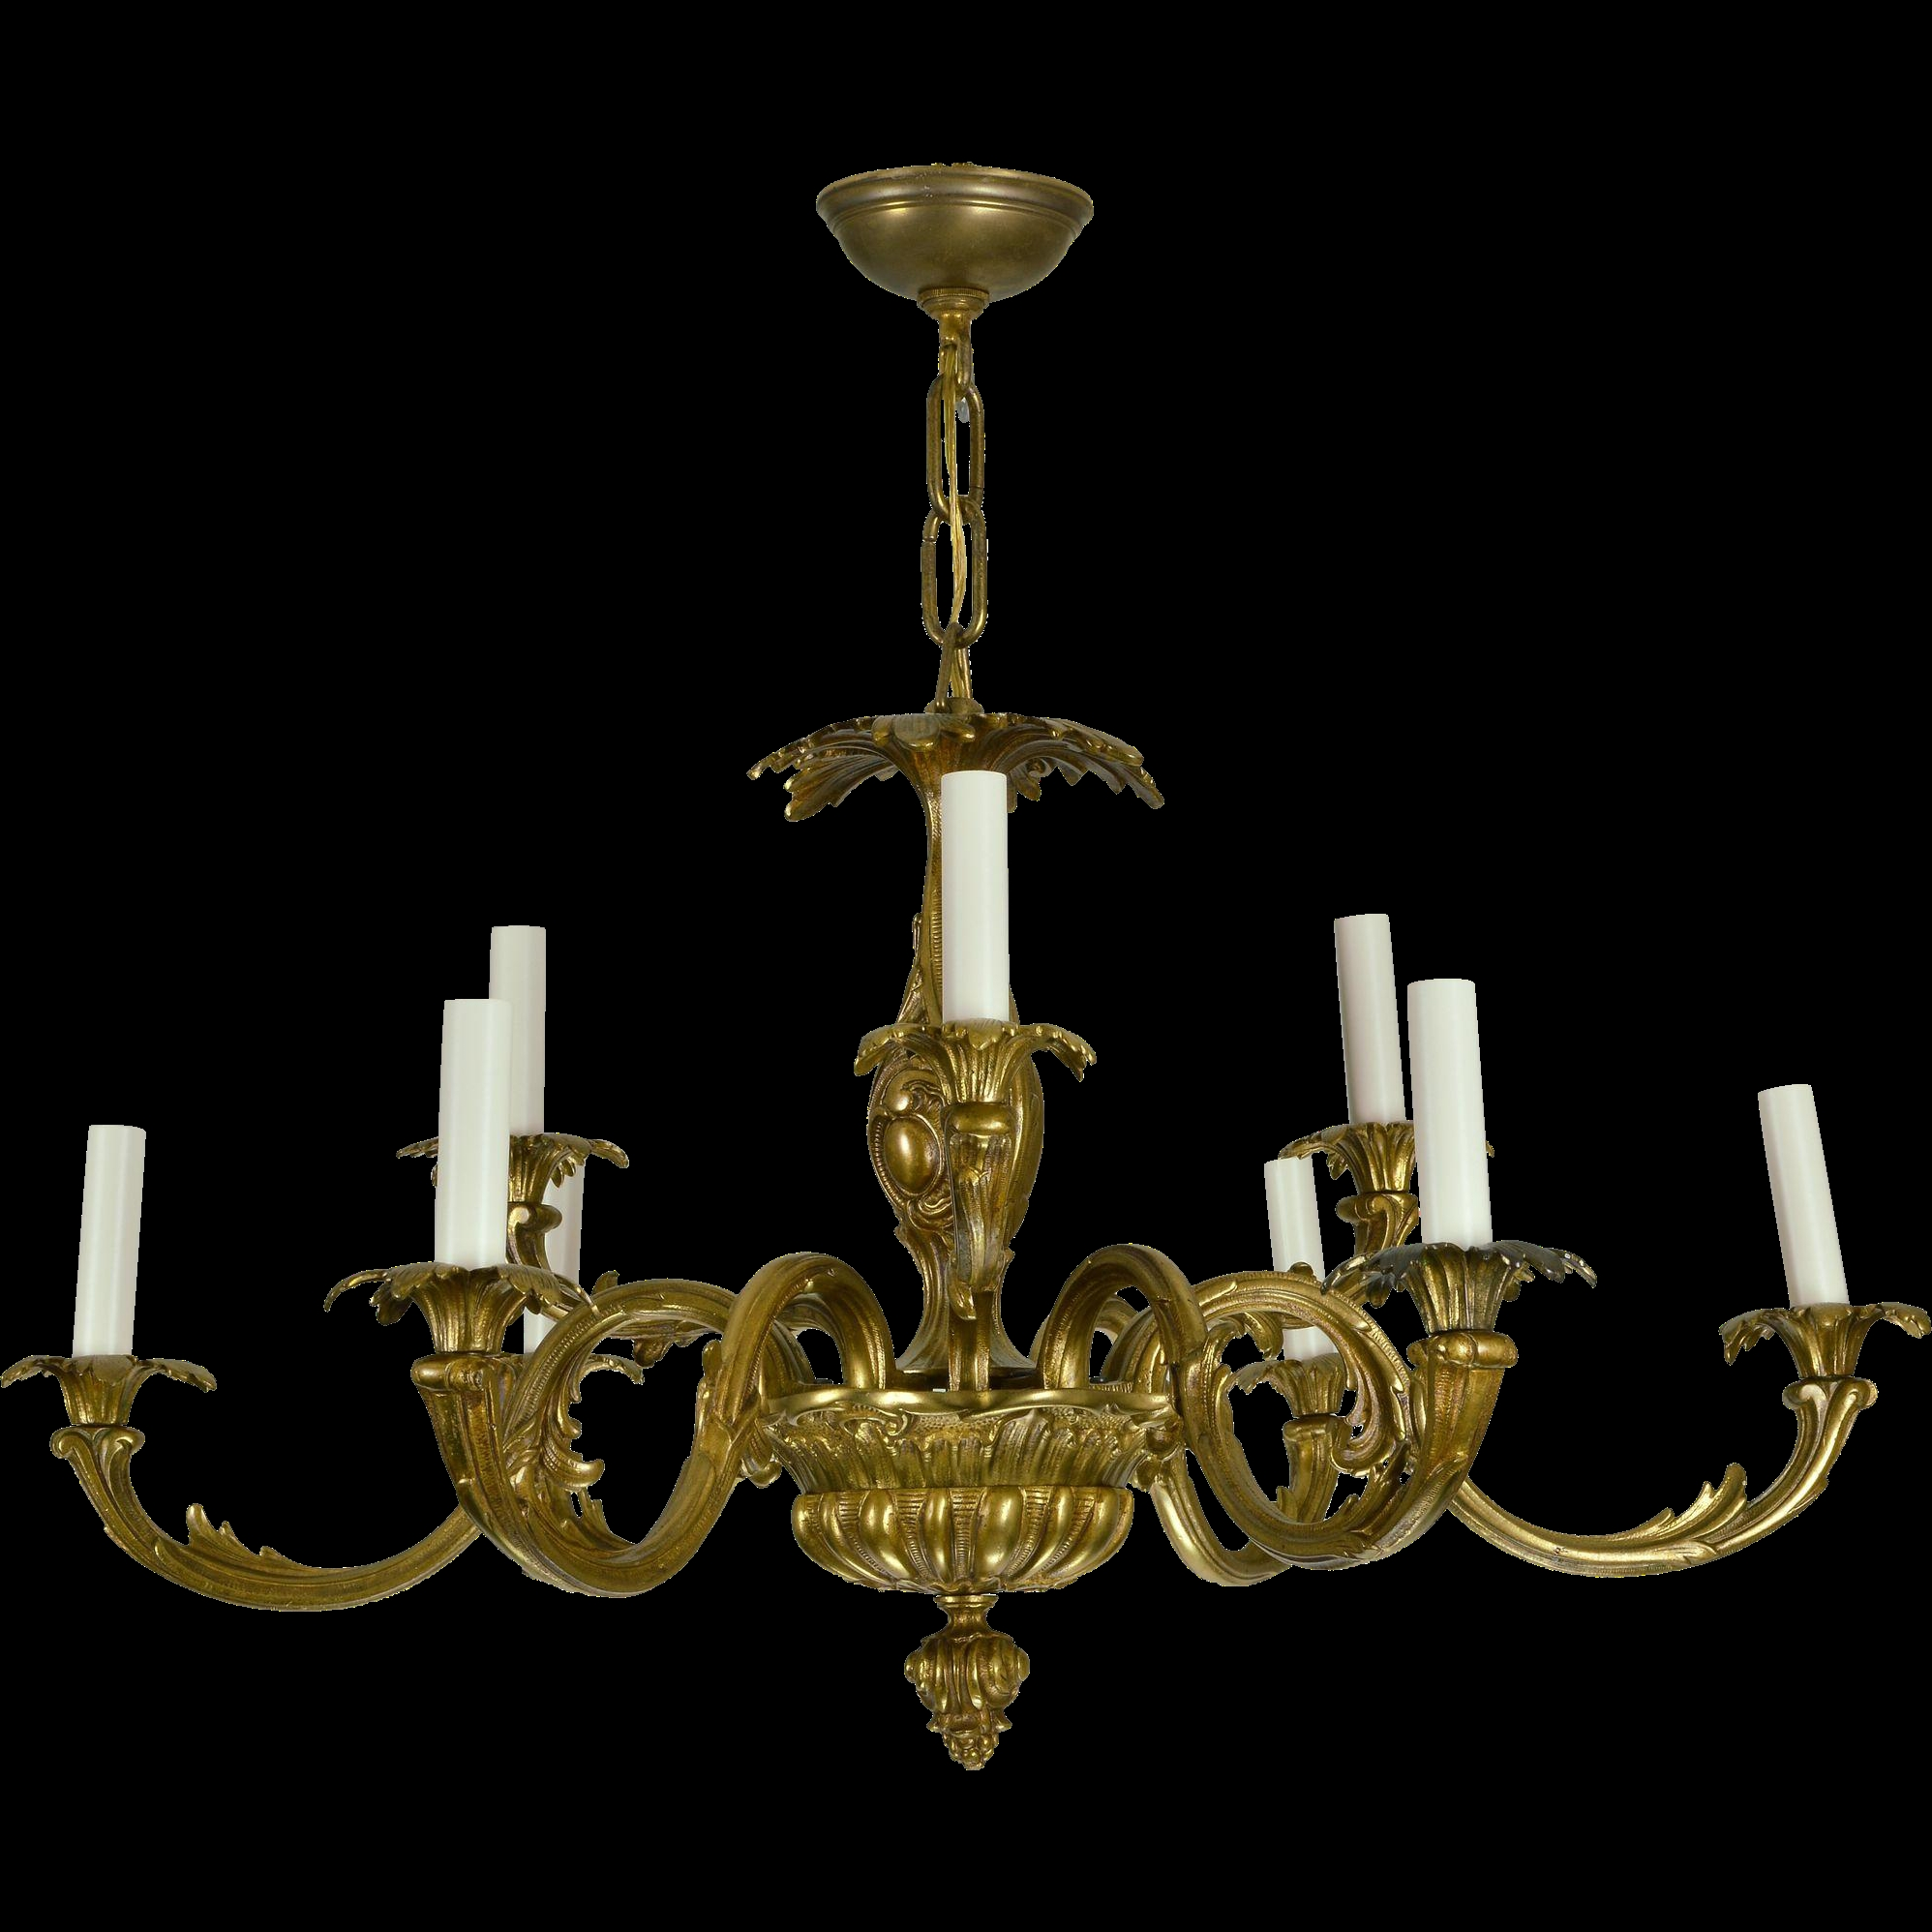 of chandelier for chandeliers sale best magnificent design vintage old fashioned